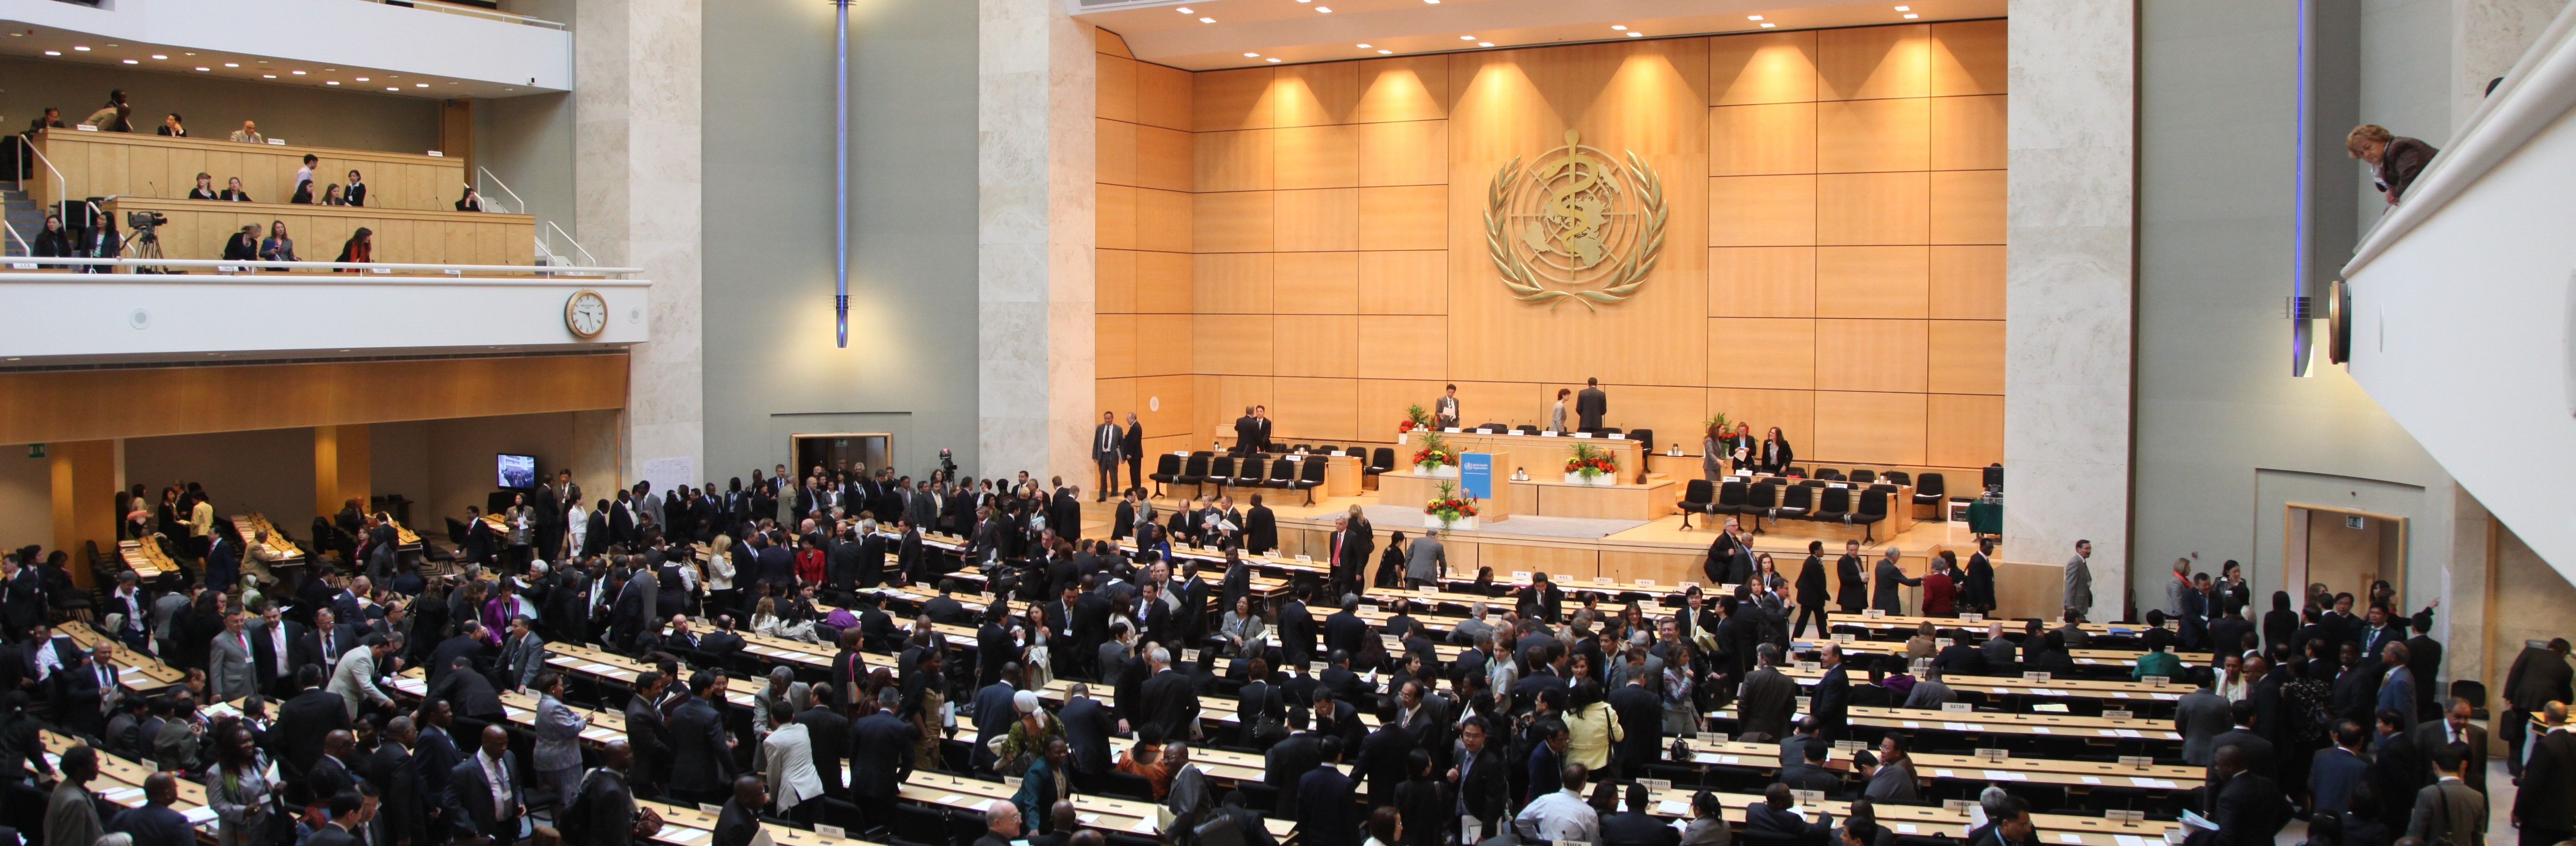 72nd session of the World Health Assembly